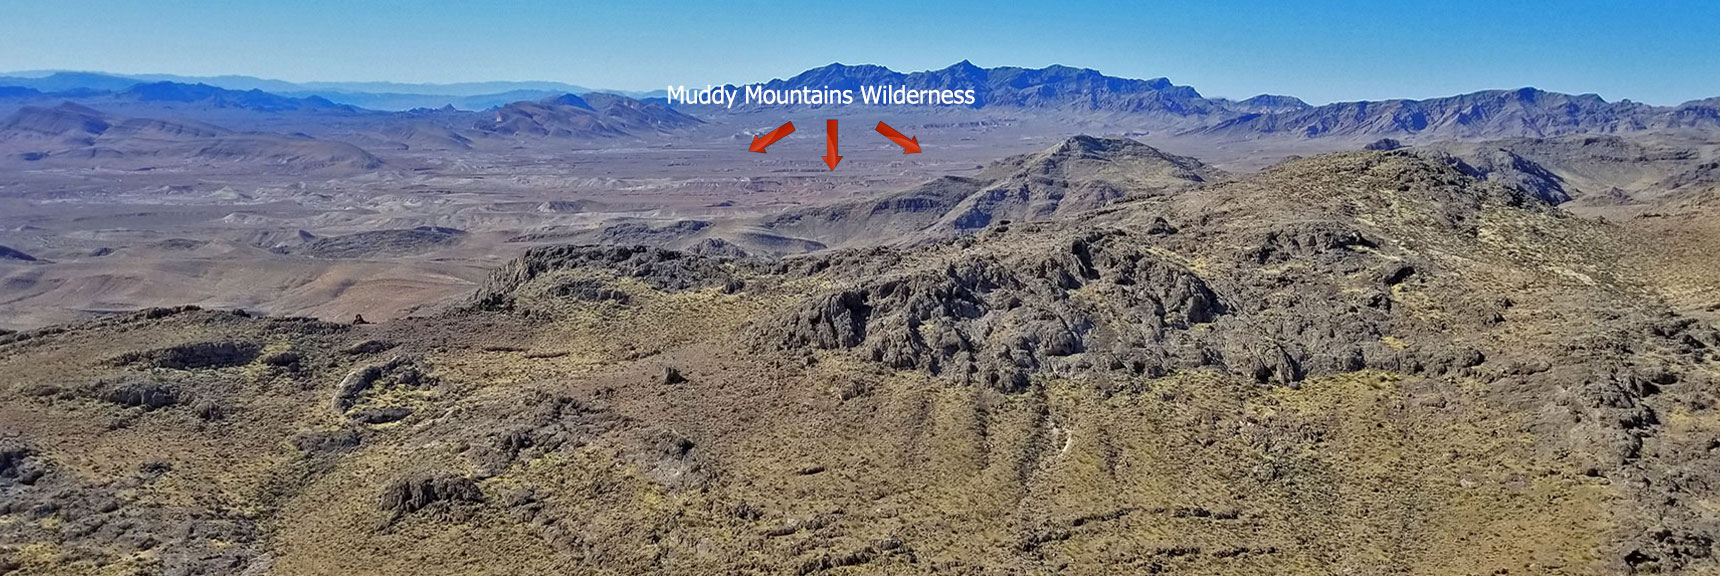 Muddy Mountains Wilderness NW High Point Panorama Slide 8